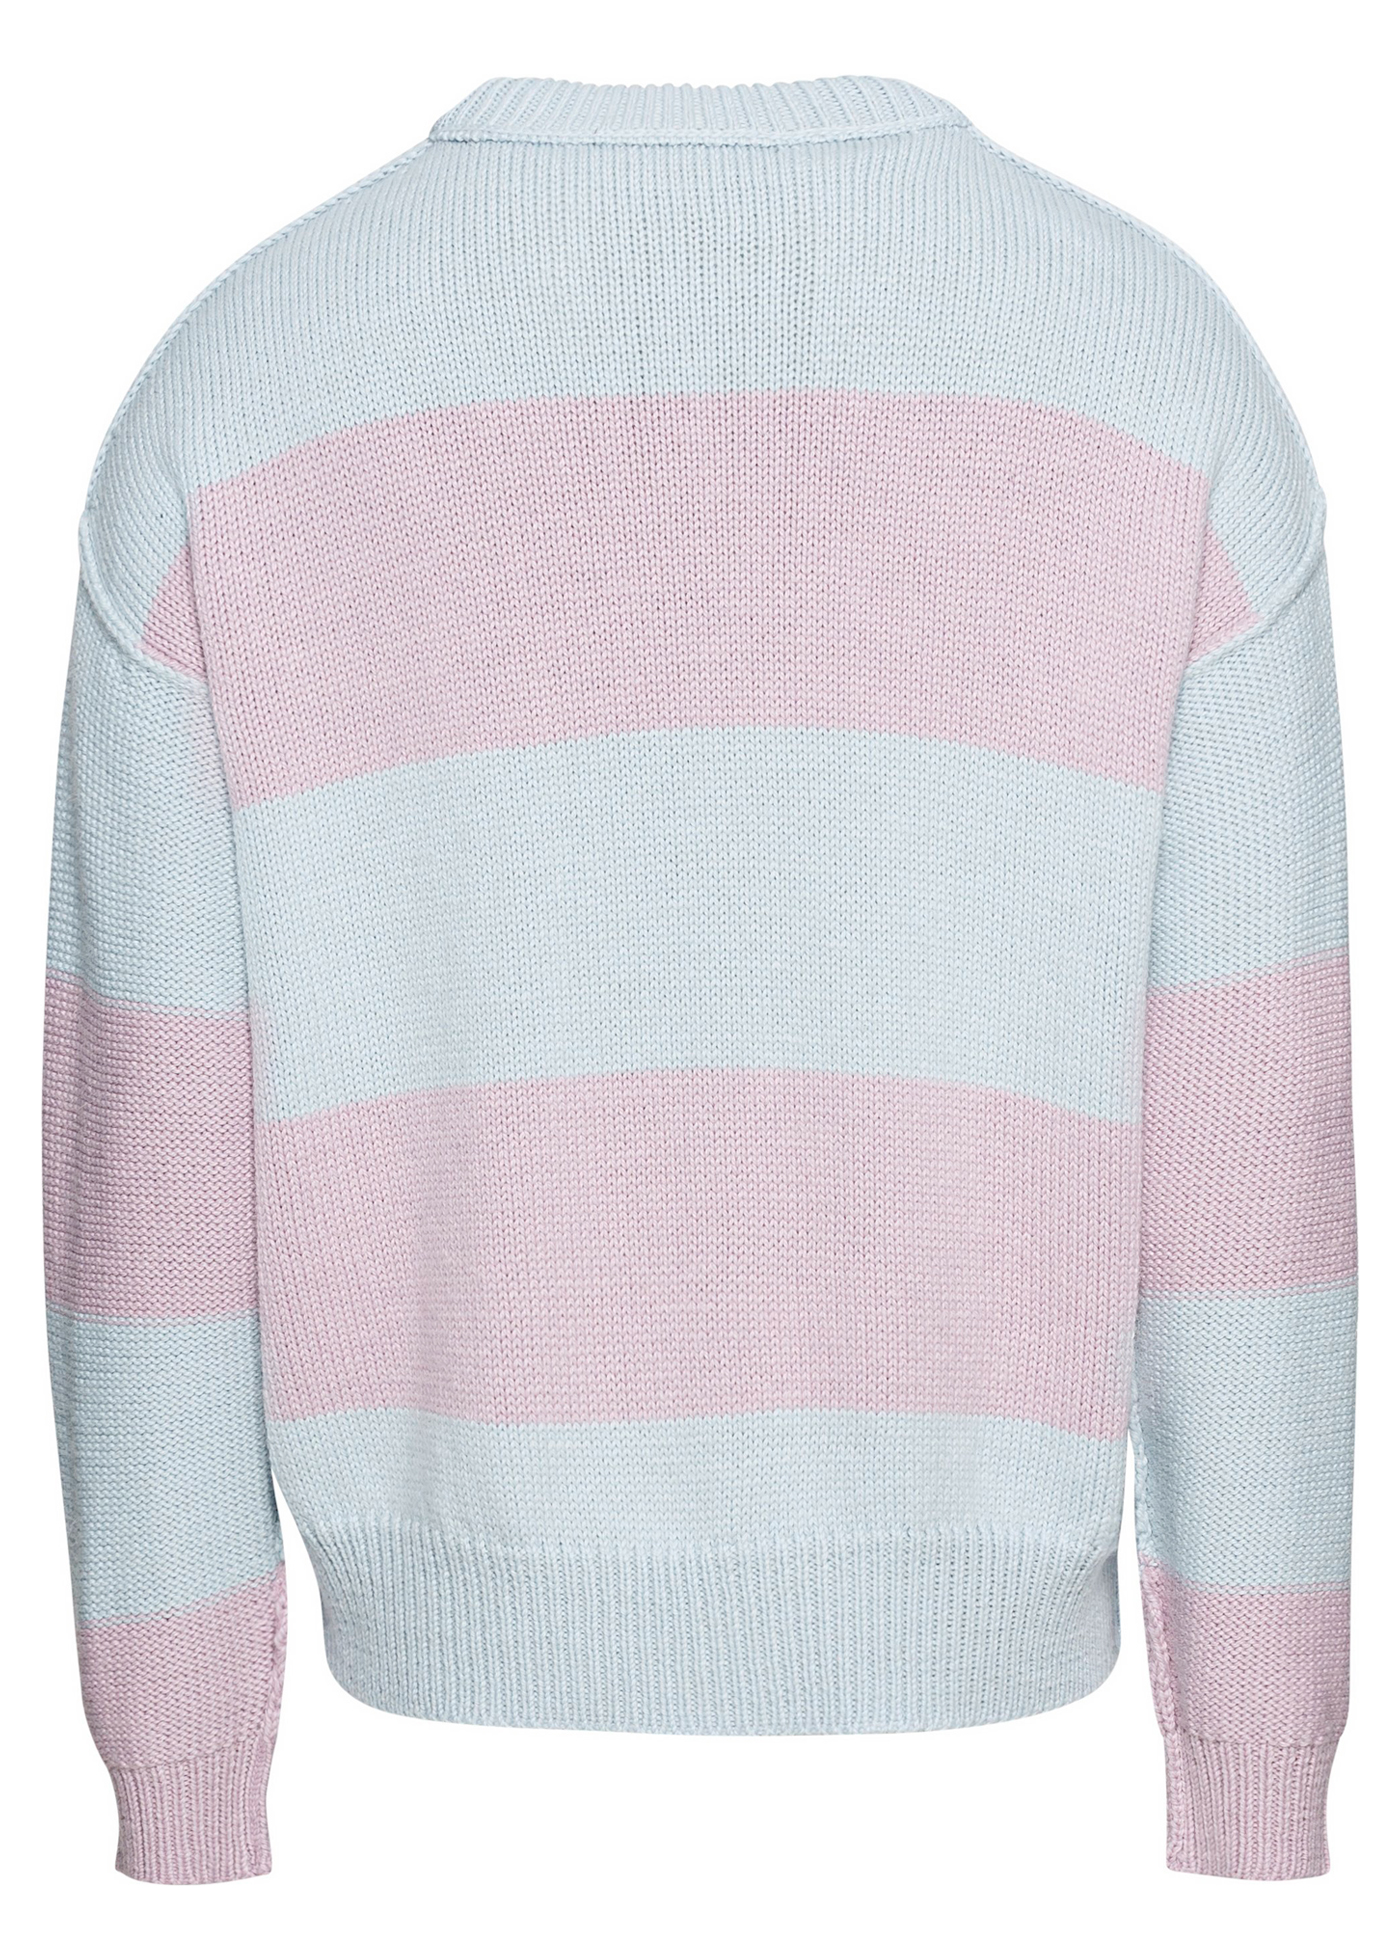 PXP STRIPY SWEATER image number 1